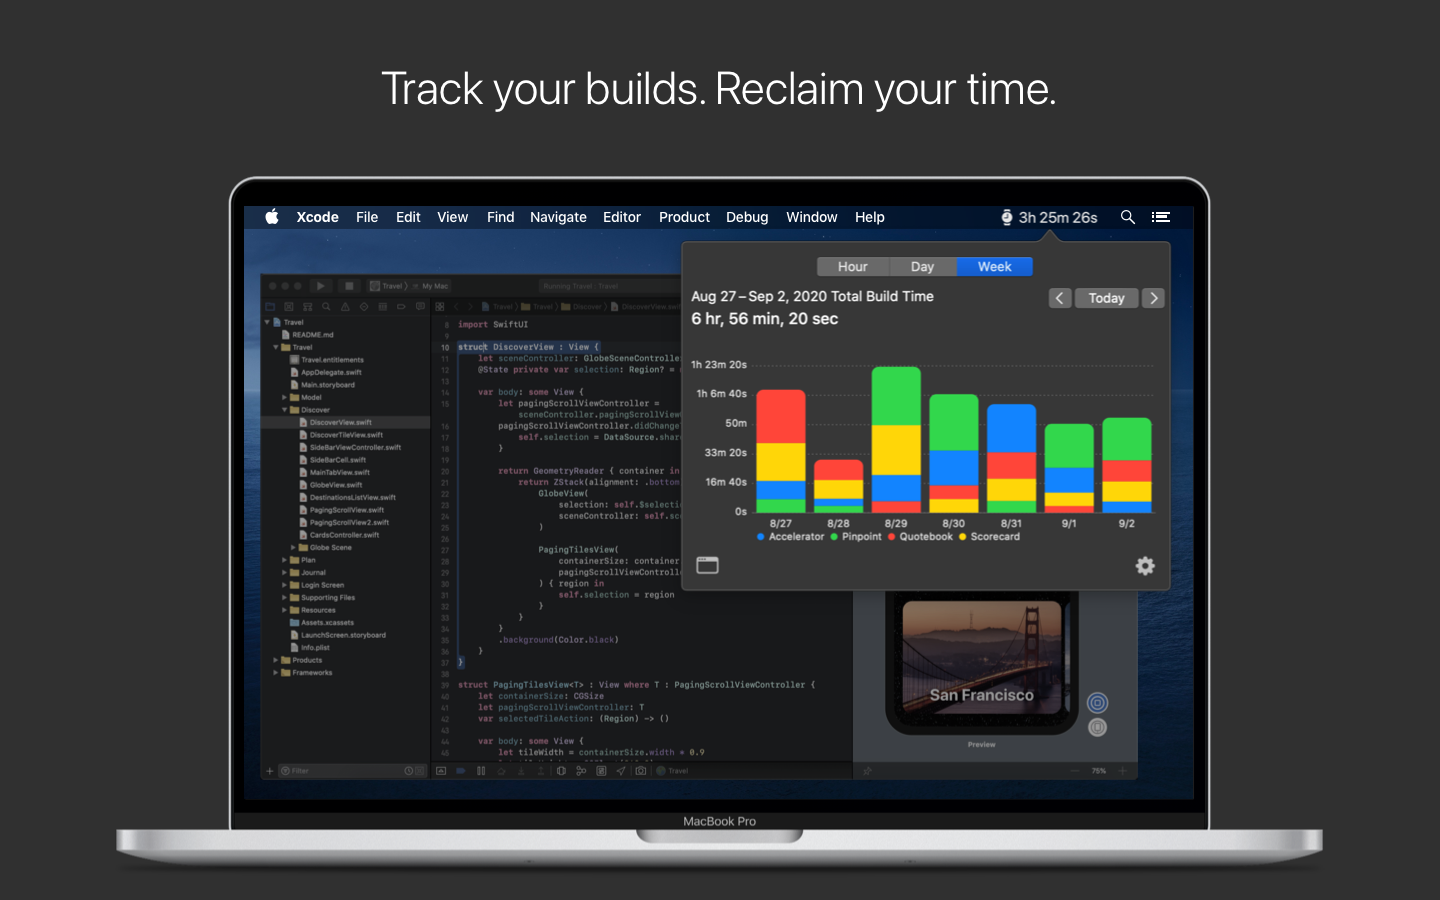 Lickability Releases Buildwatch for Xcode - Mac App to Track Build Times Image